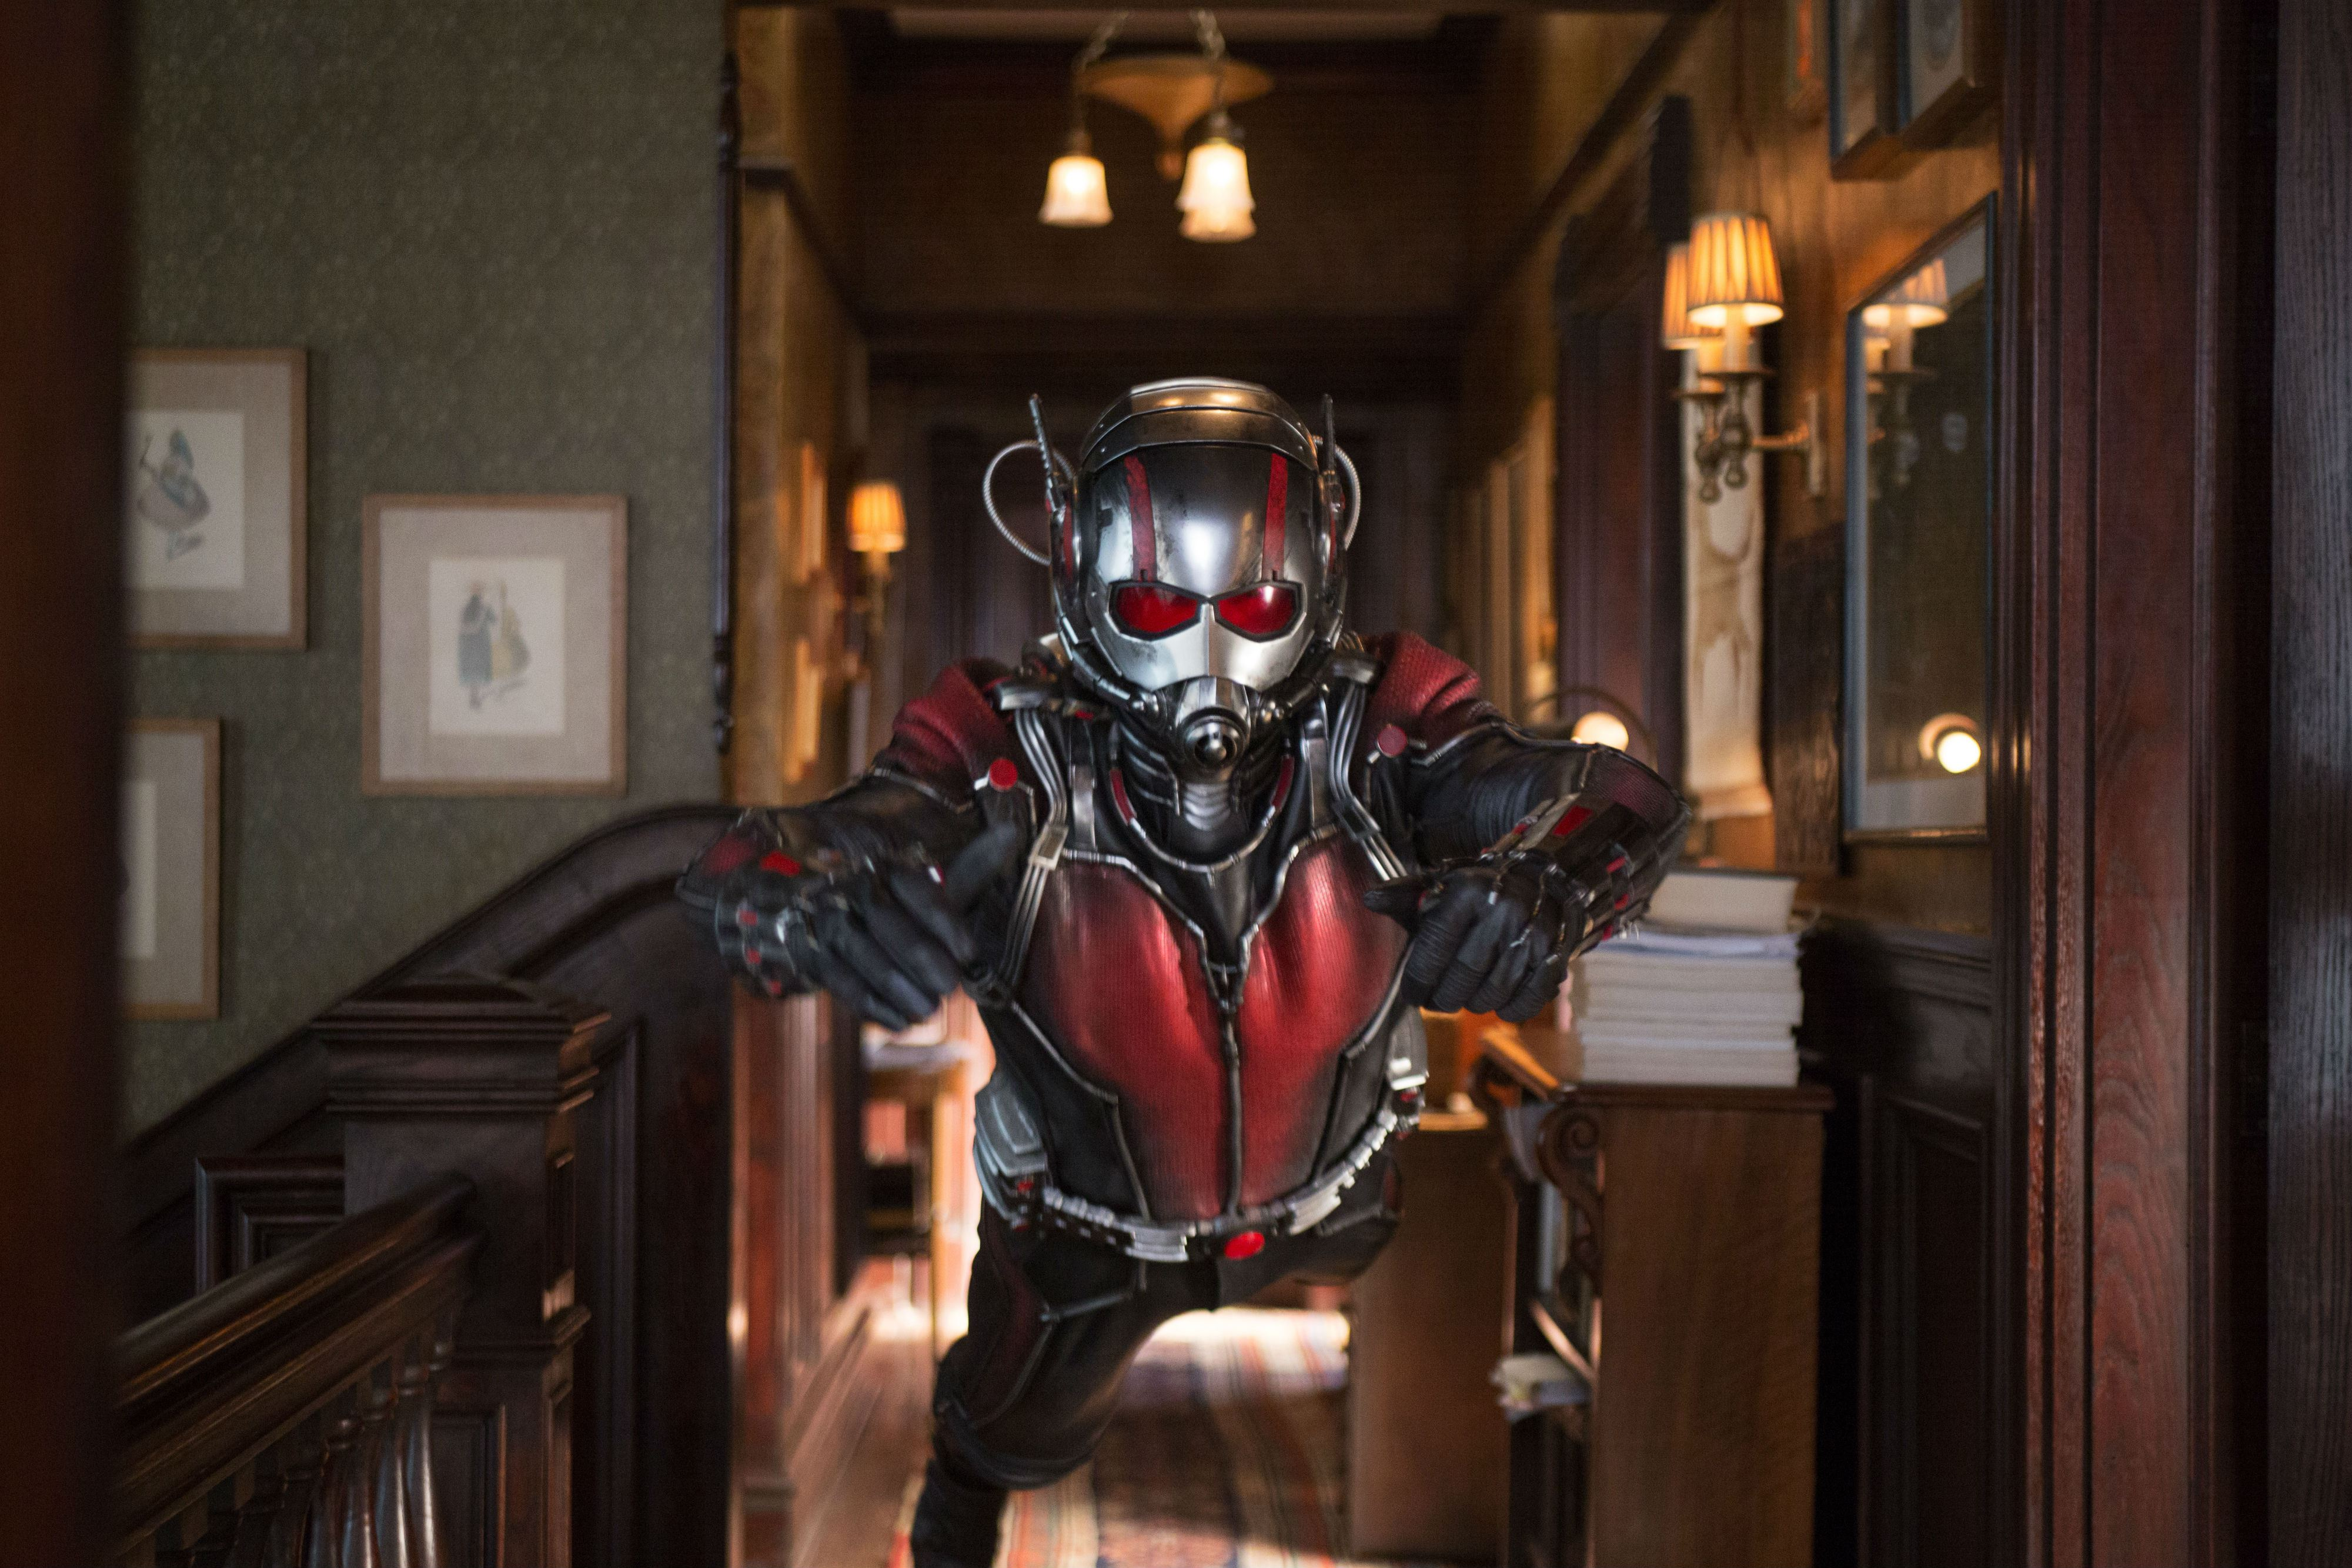 Peyton Reed may return to direct Ant-Man and the Wasp